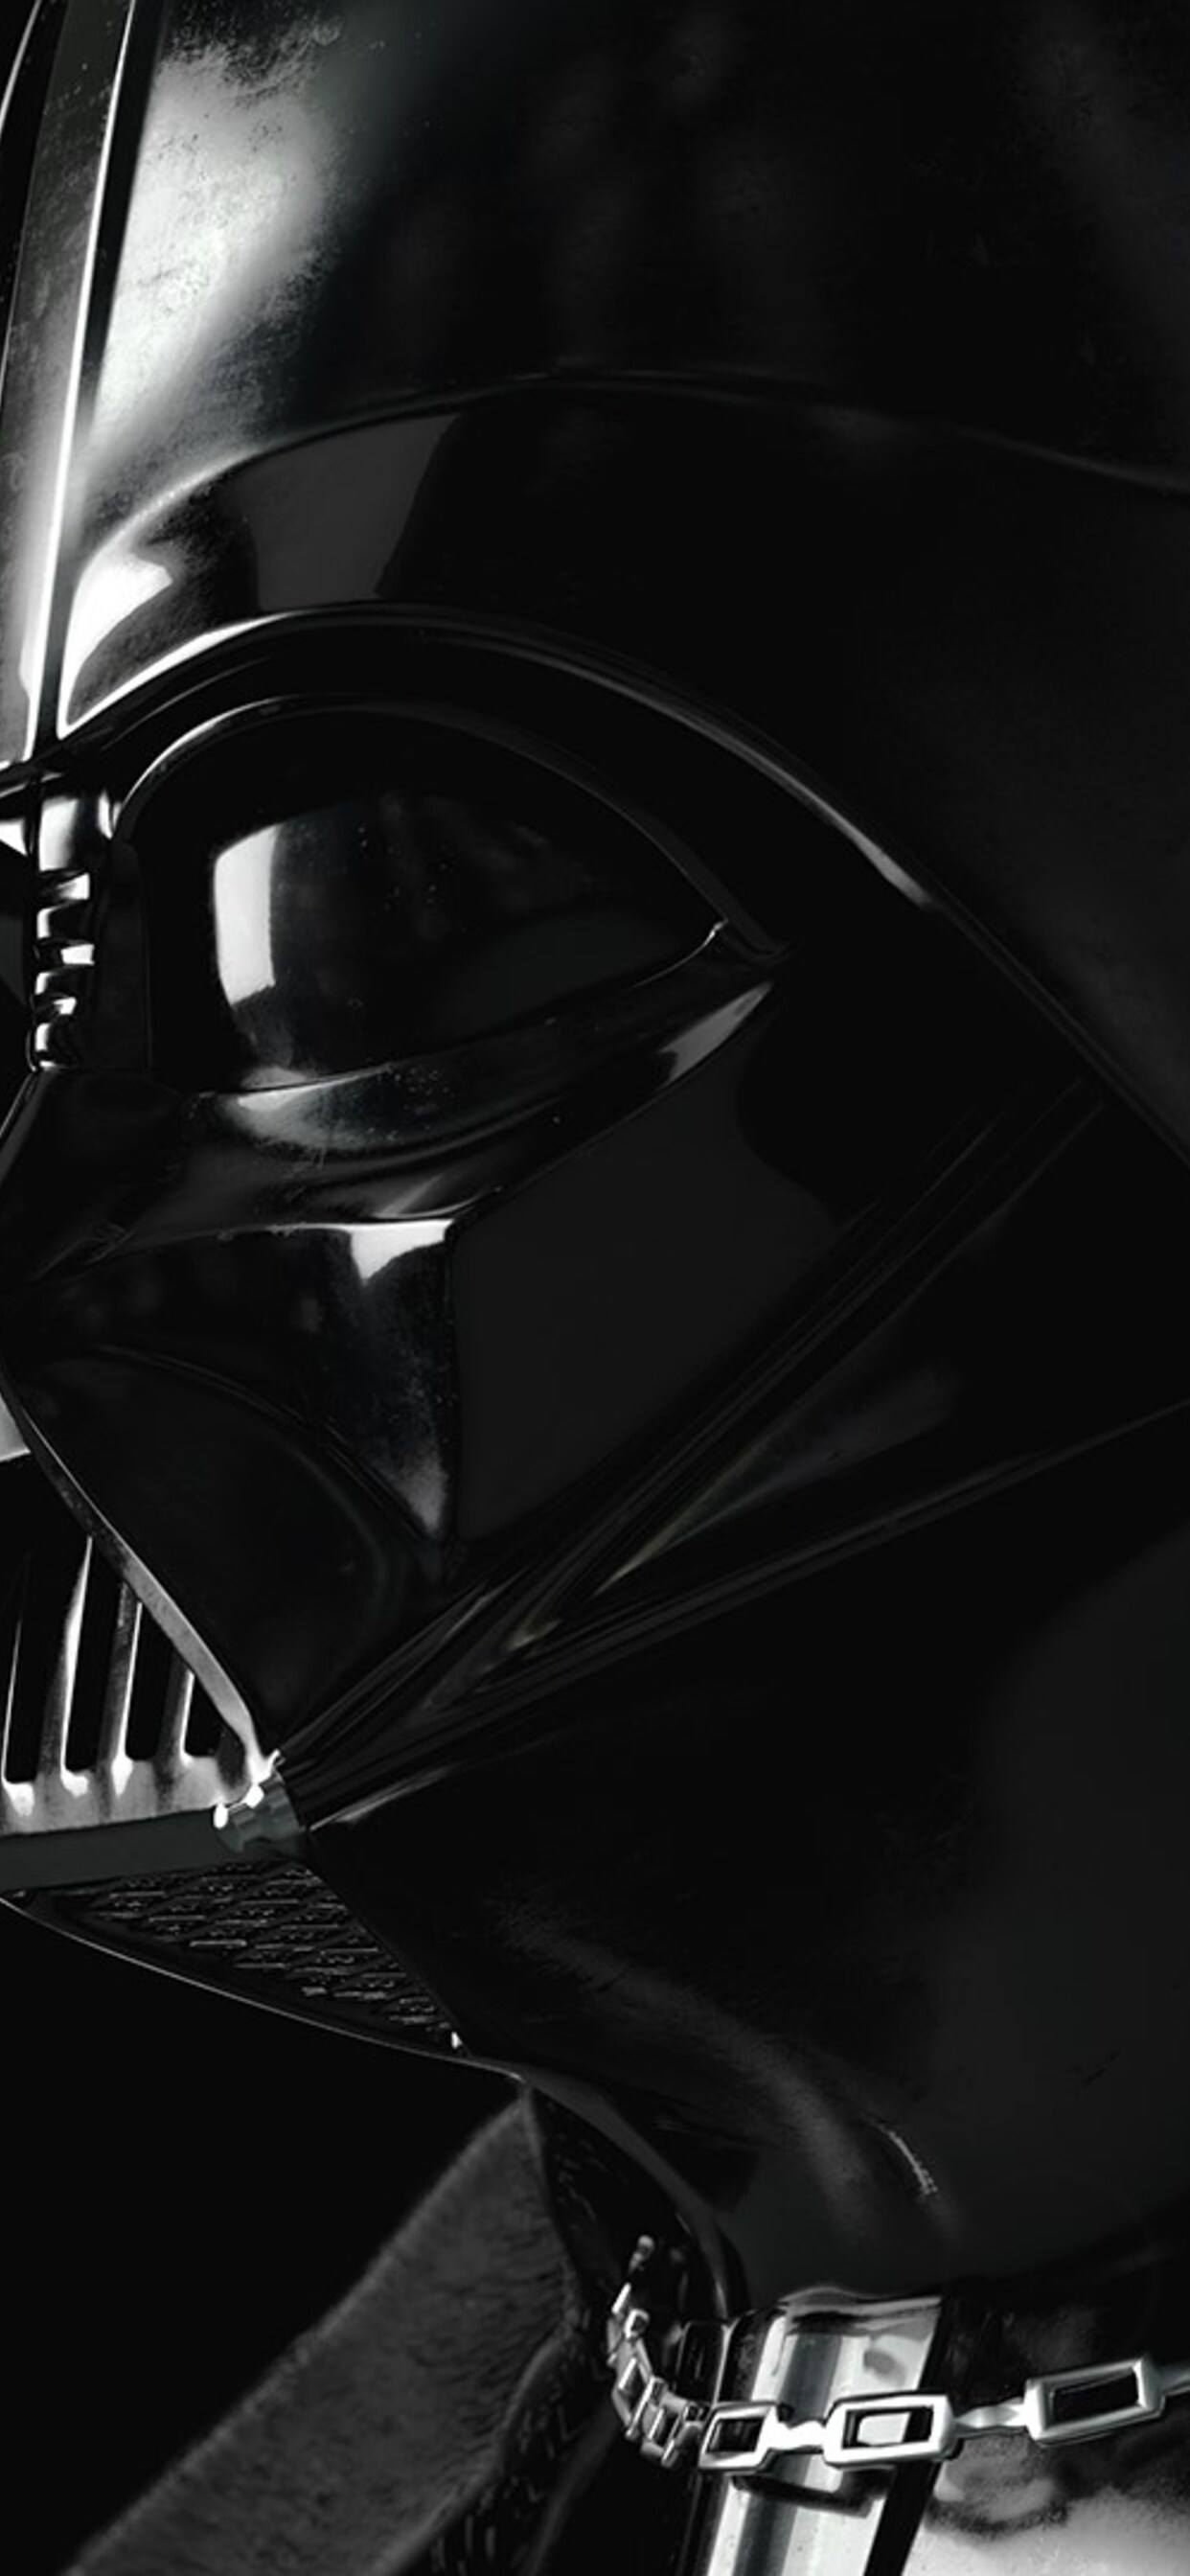 1242x2688 Star Wars Episode Vii The Force Awakens Iphone Xs